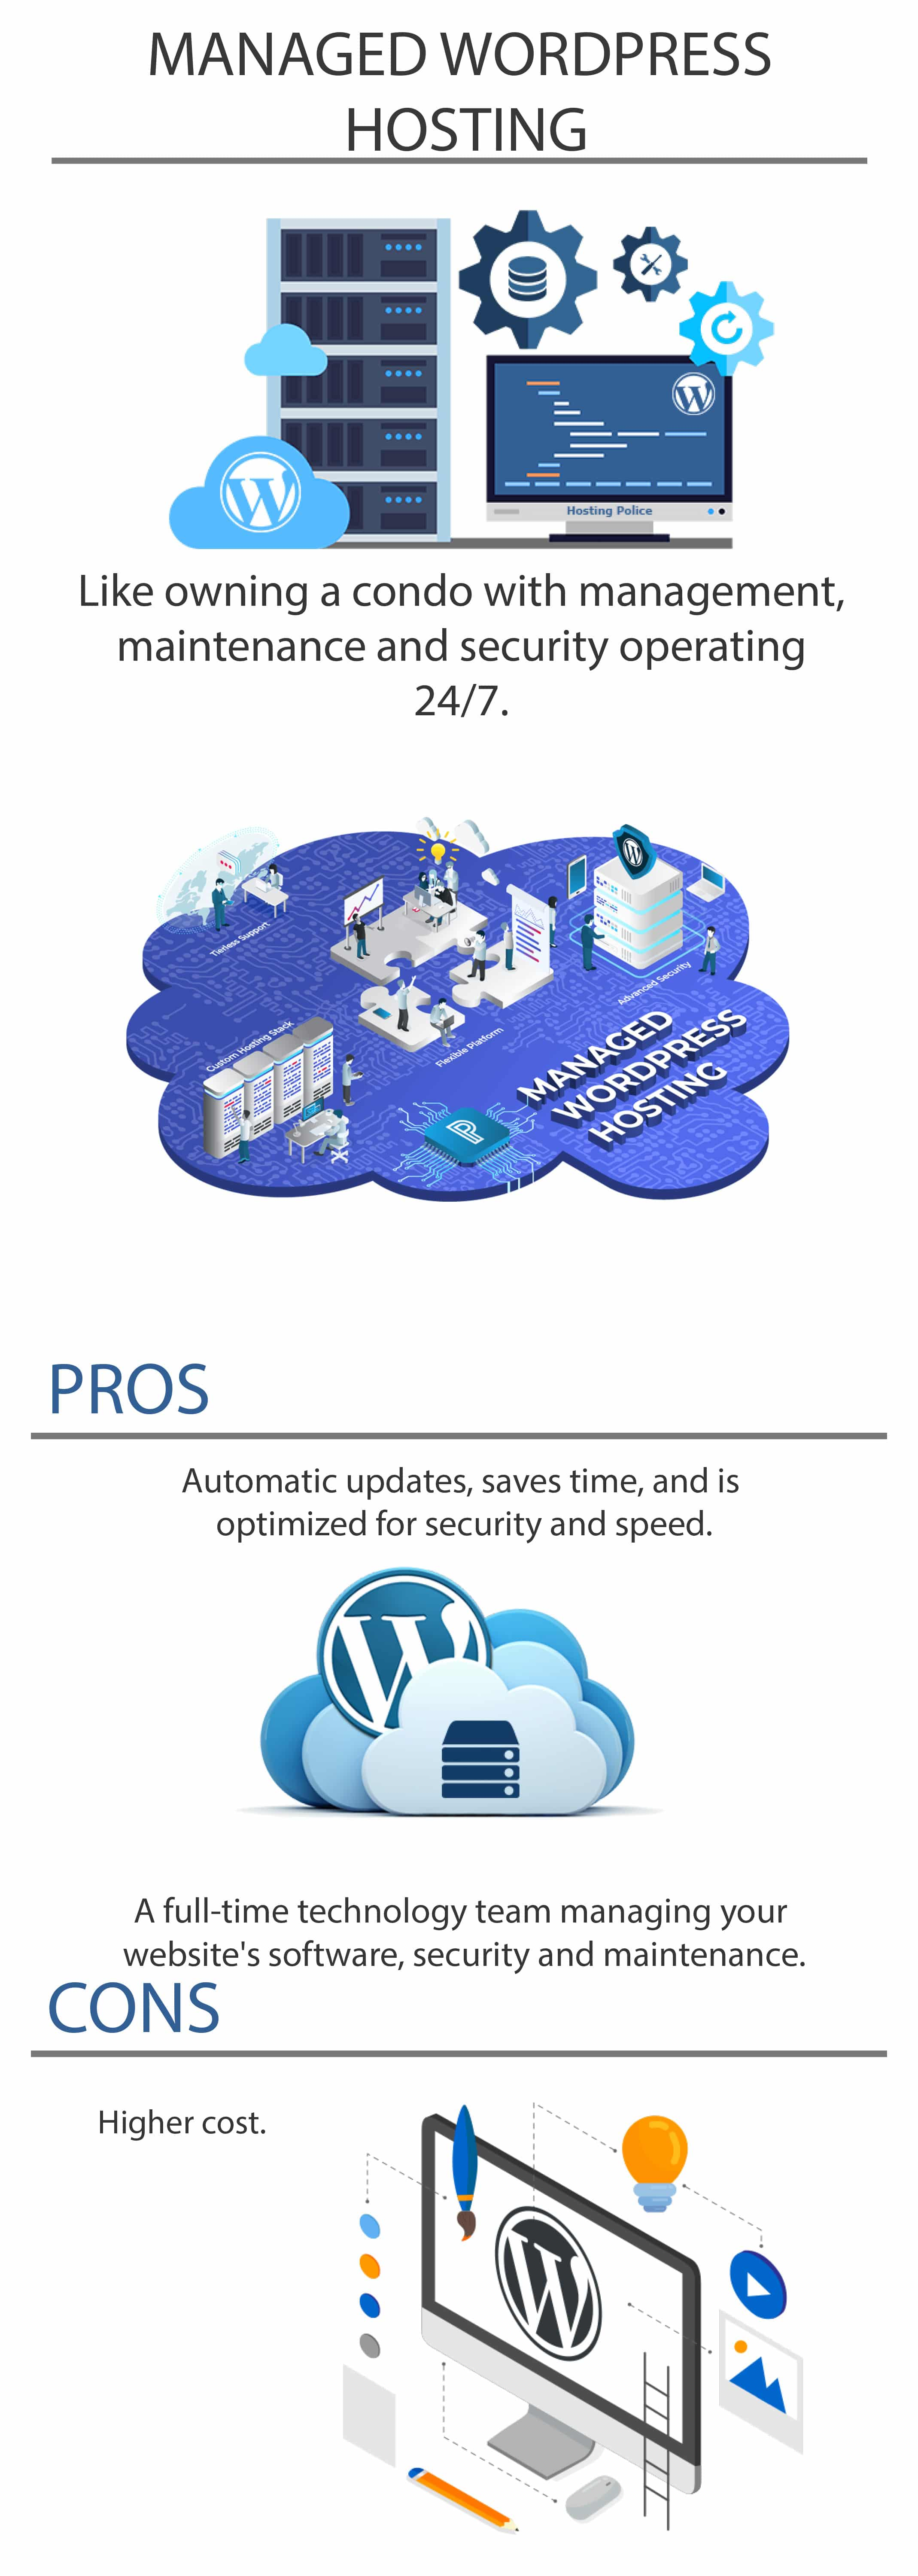 different types of web hosting - Managed WordPress hosting guide